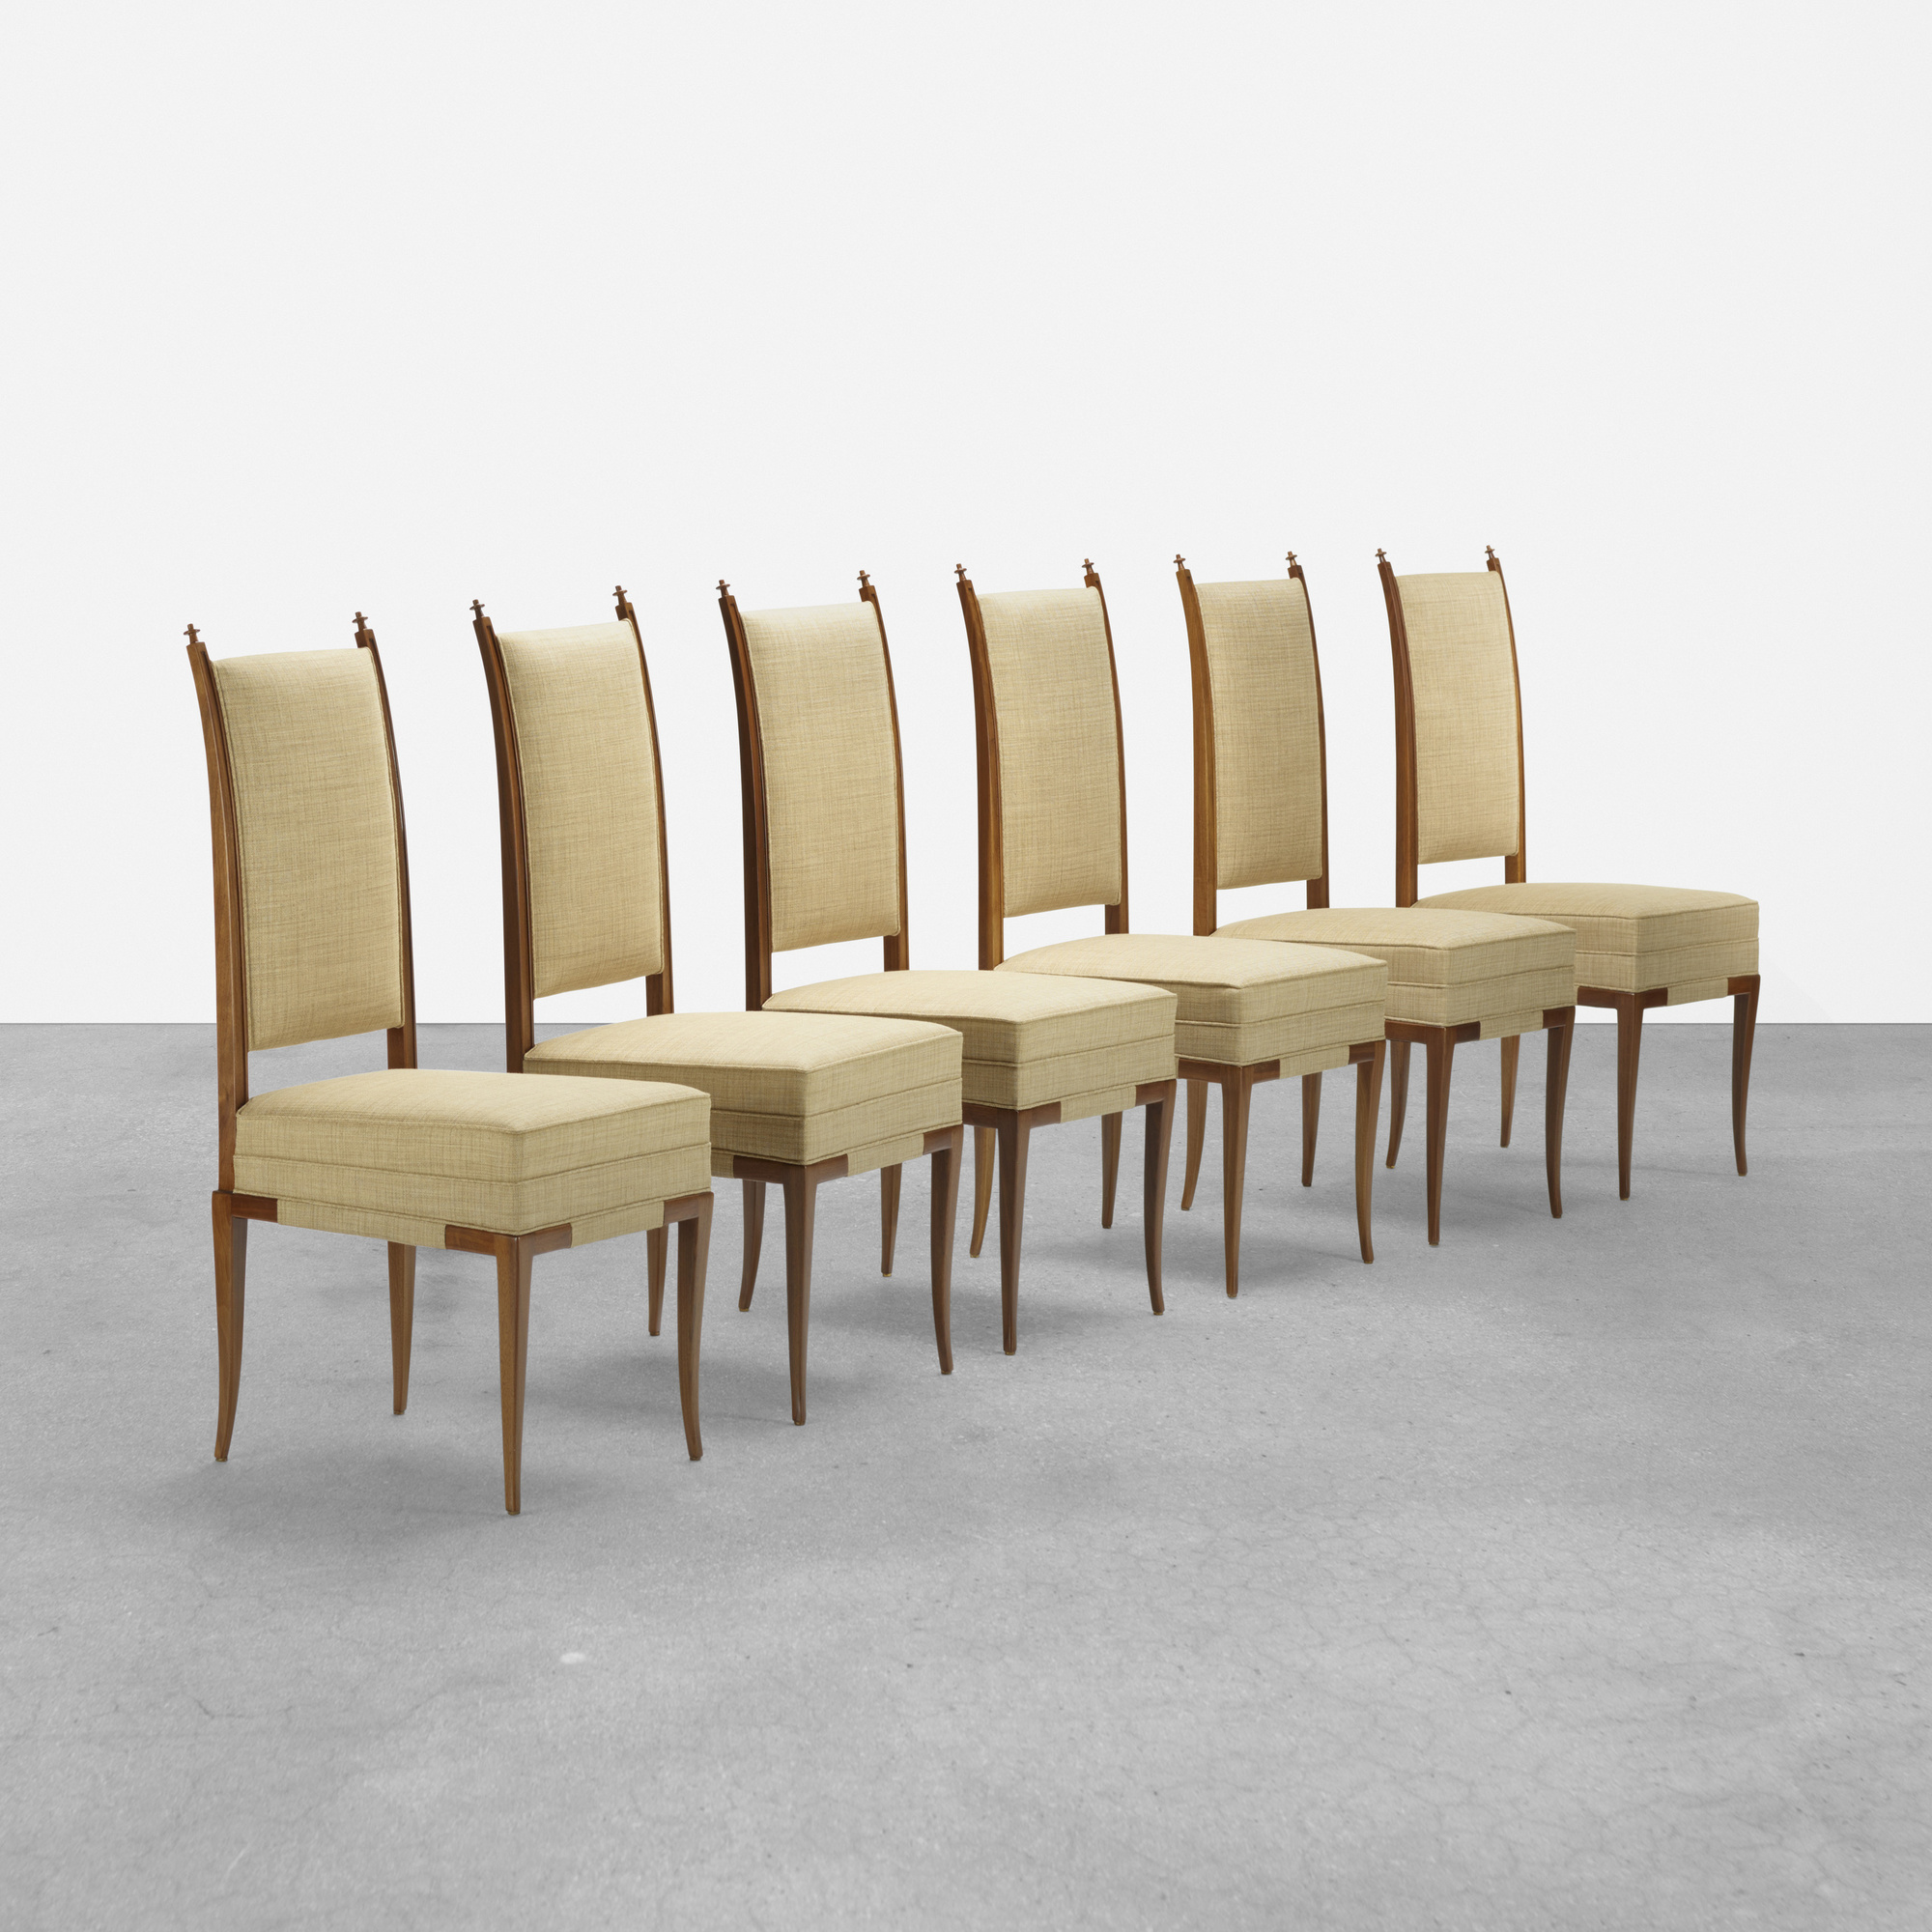 391: Tommi Parzinger / chairs, set of six (1 of 2)